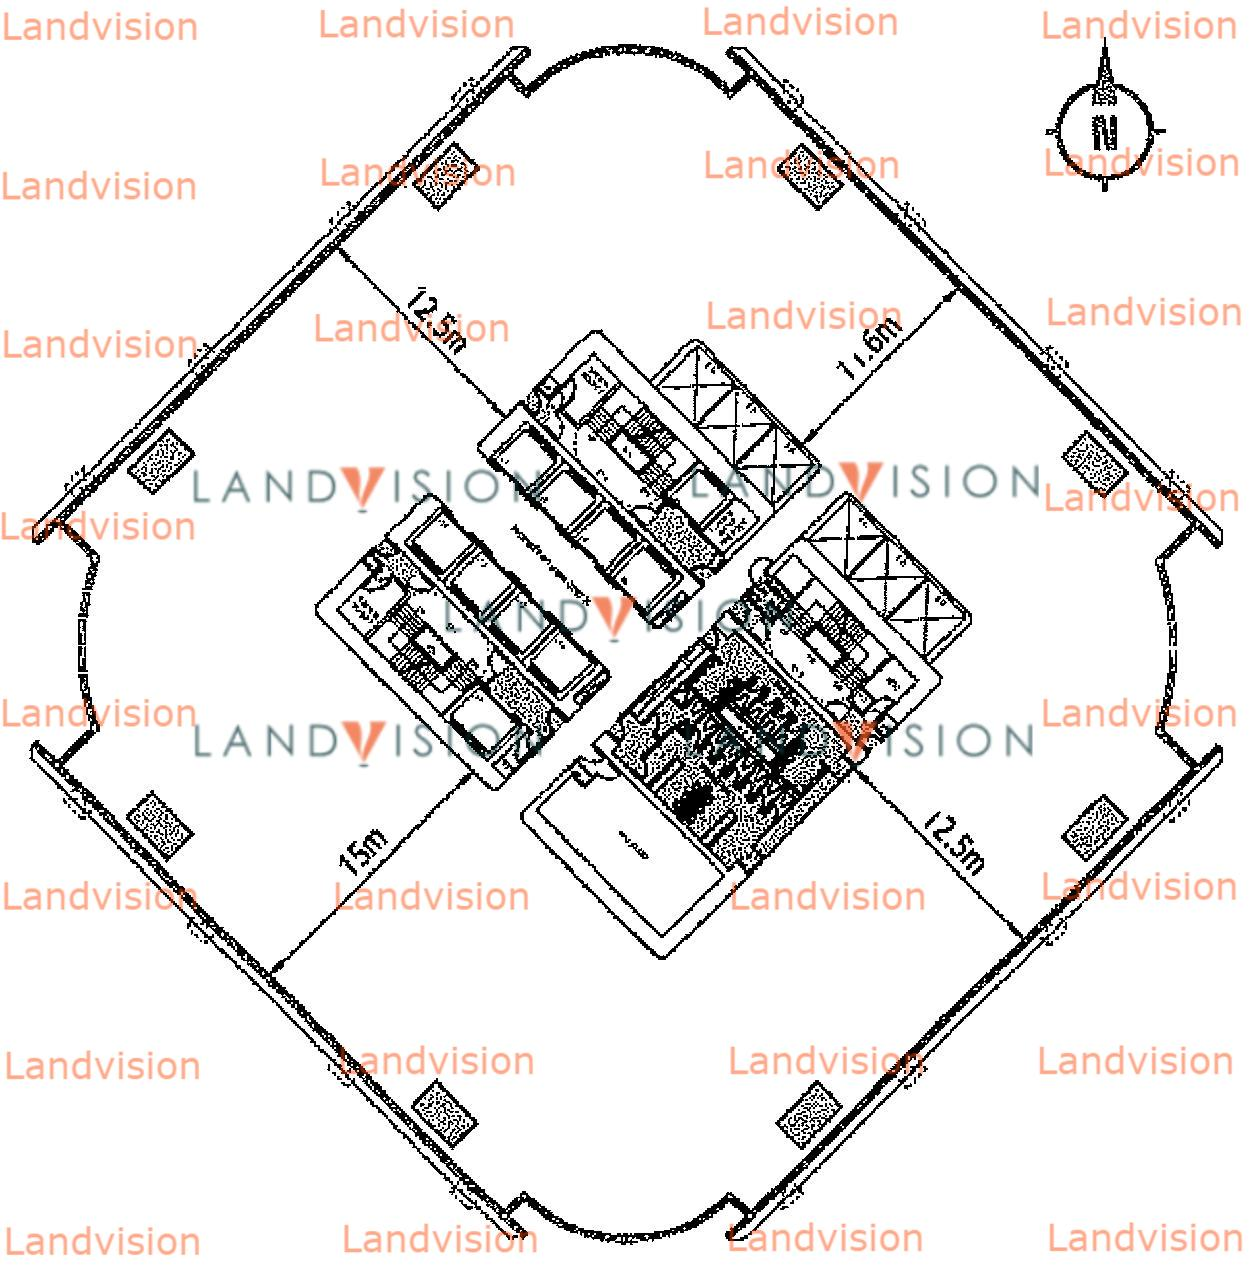 https://www.landvision.com.hk/wp-content/uploads/website/resize/floorplans/001687.JPG